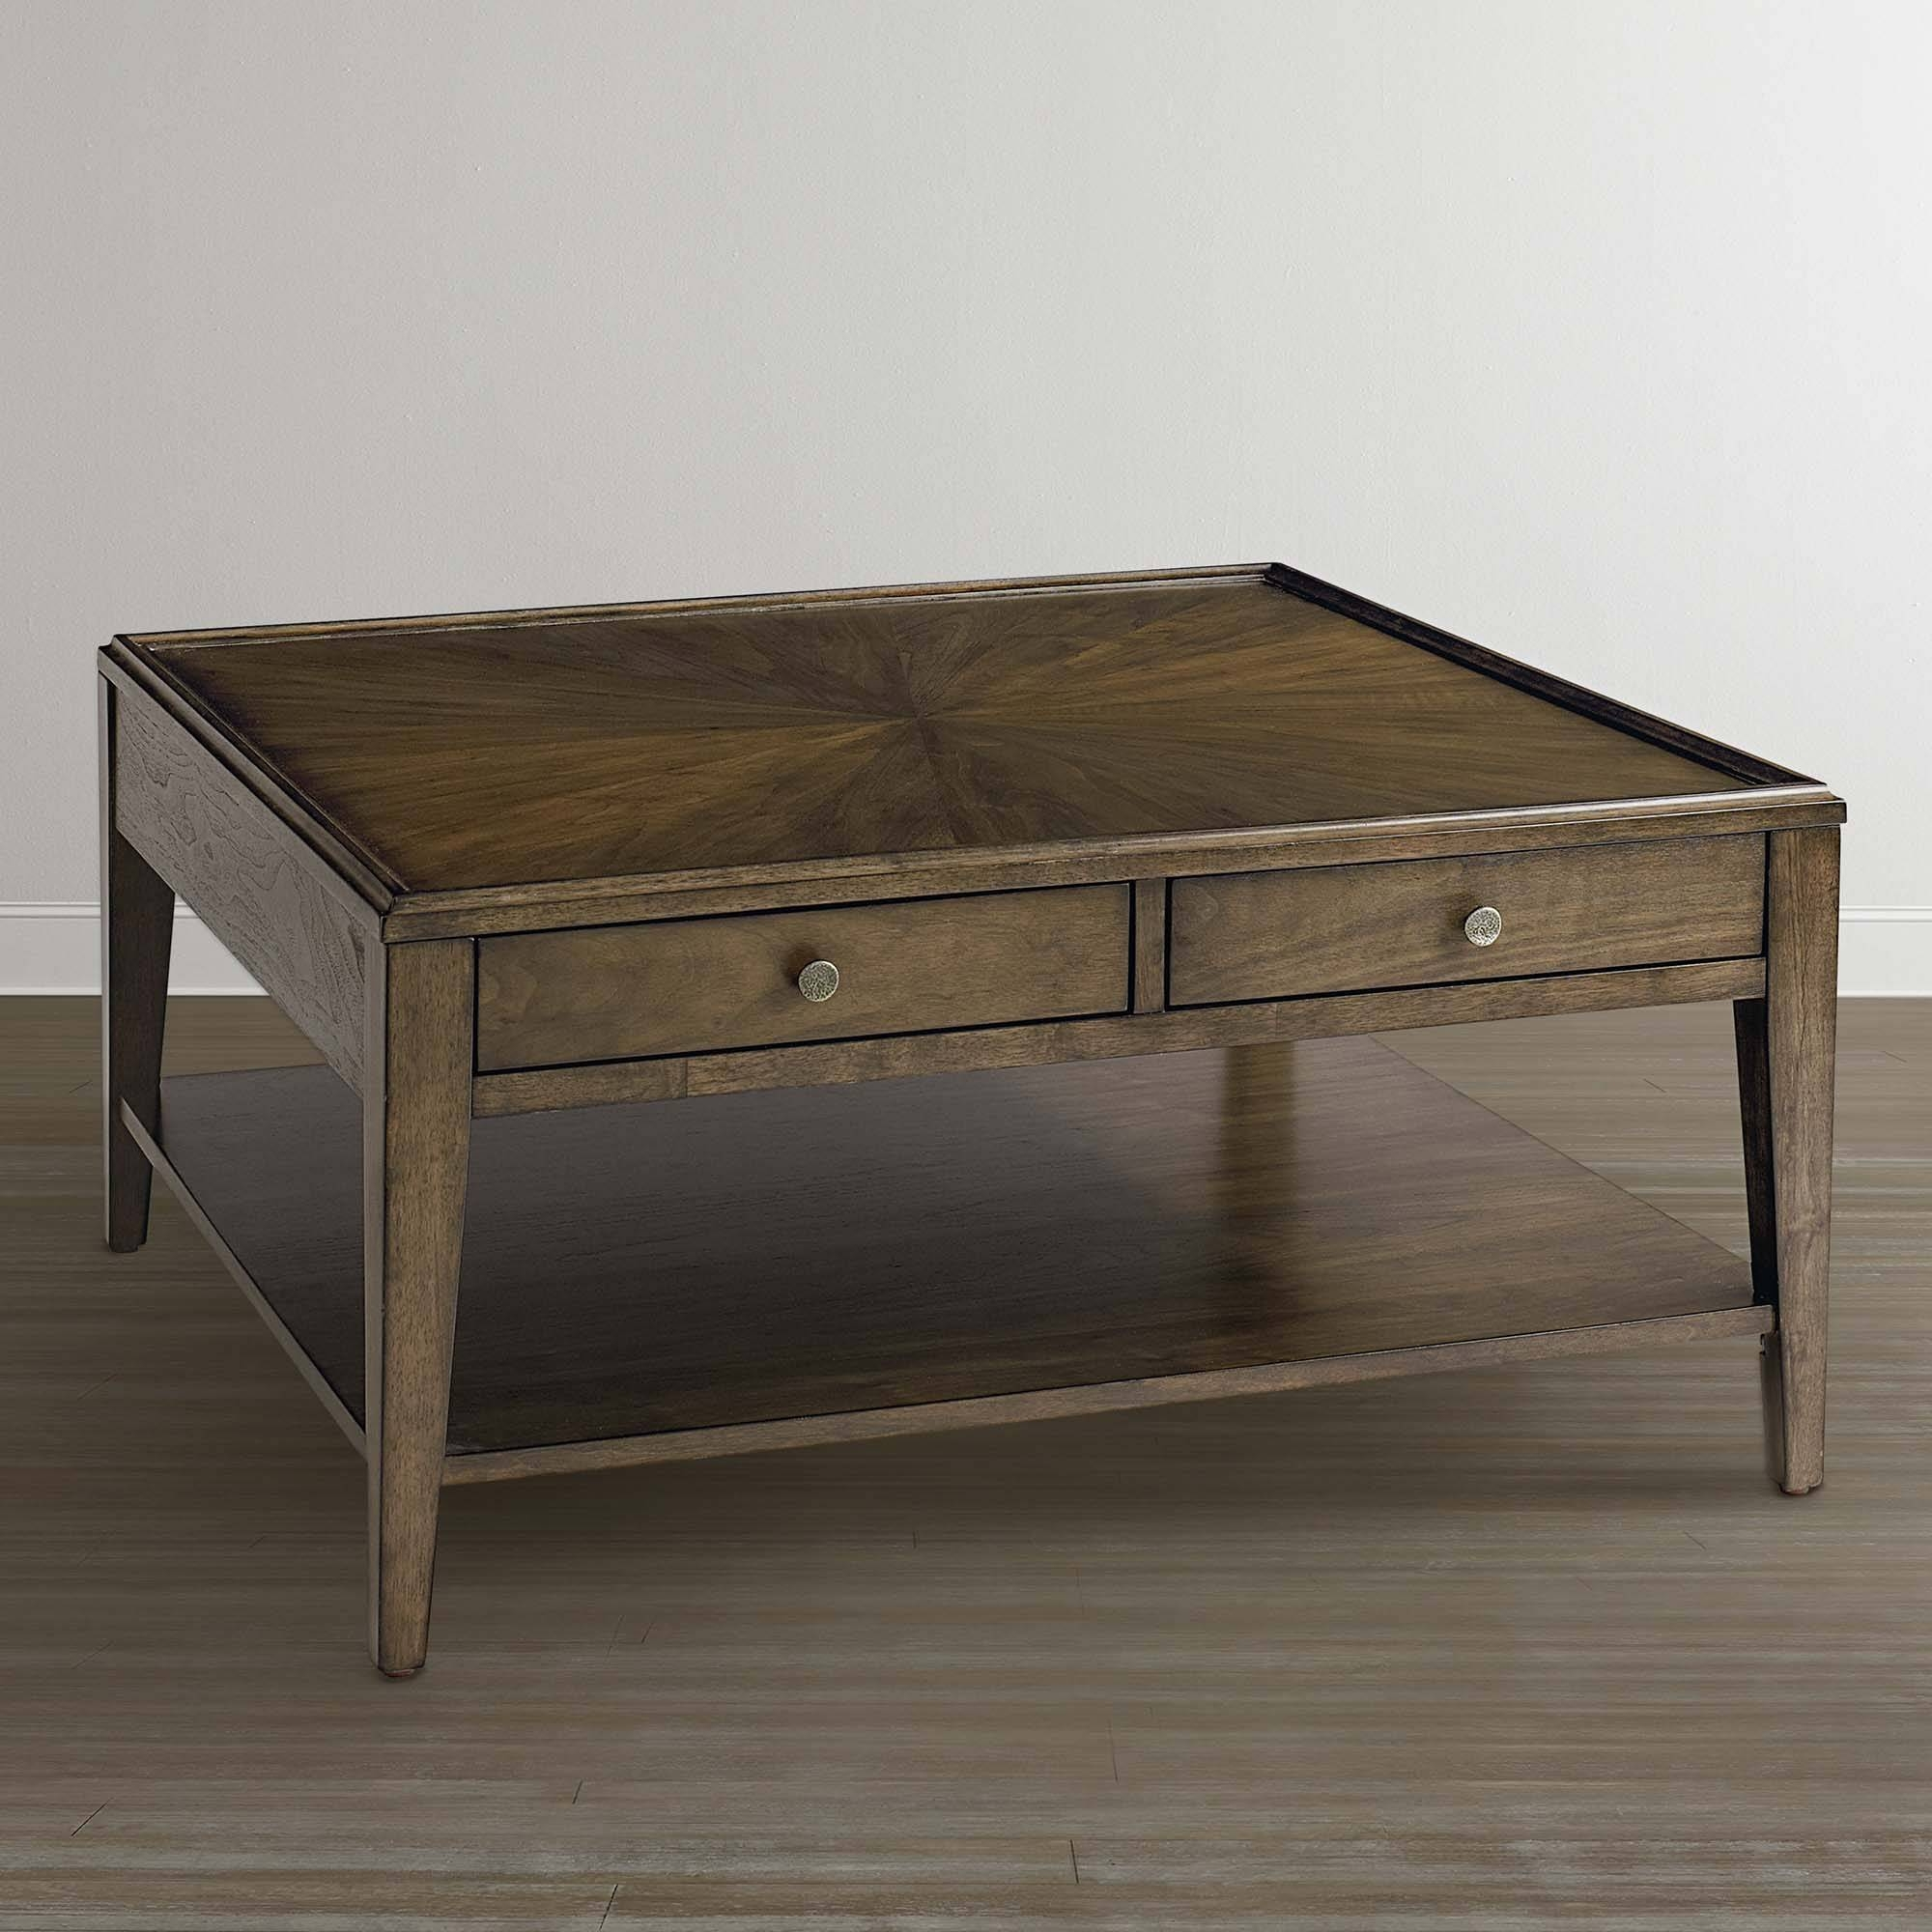 Wood Coffee Table With Storage | Coffee Tables Decoration pertaining to Square Coffee Table Storages (Image 30 of 30)